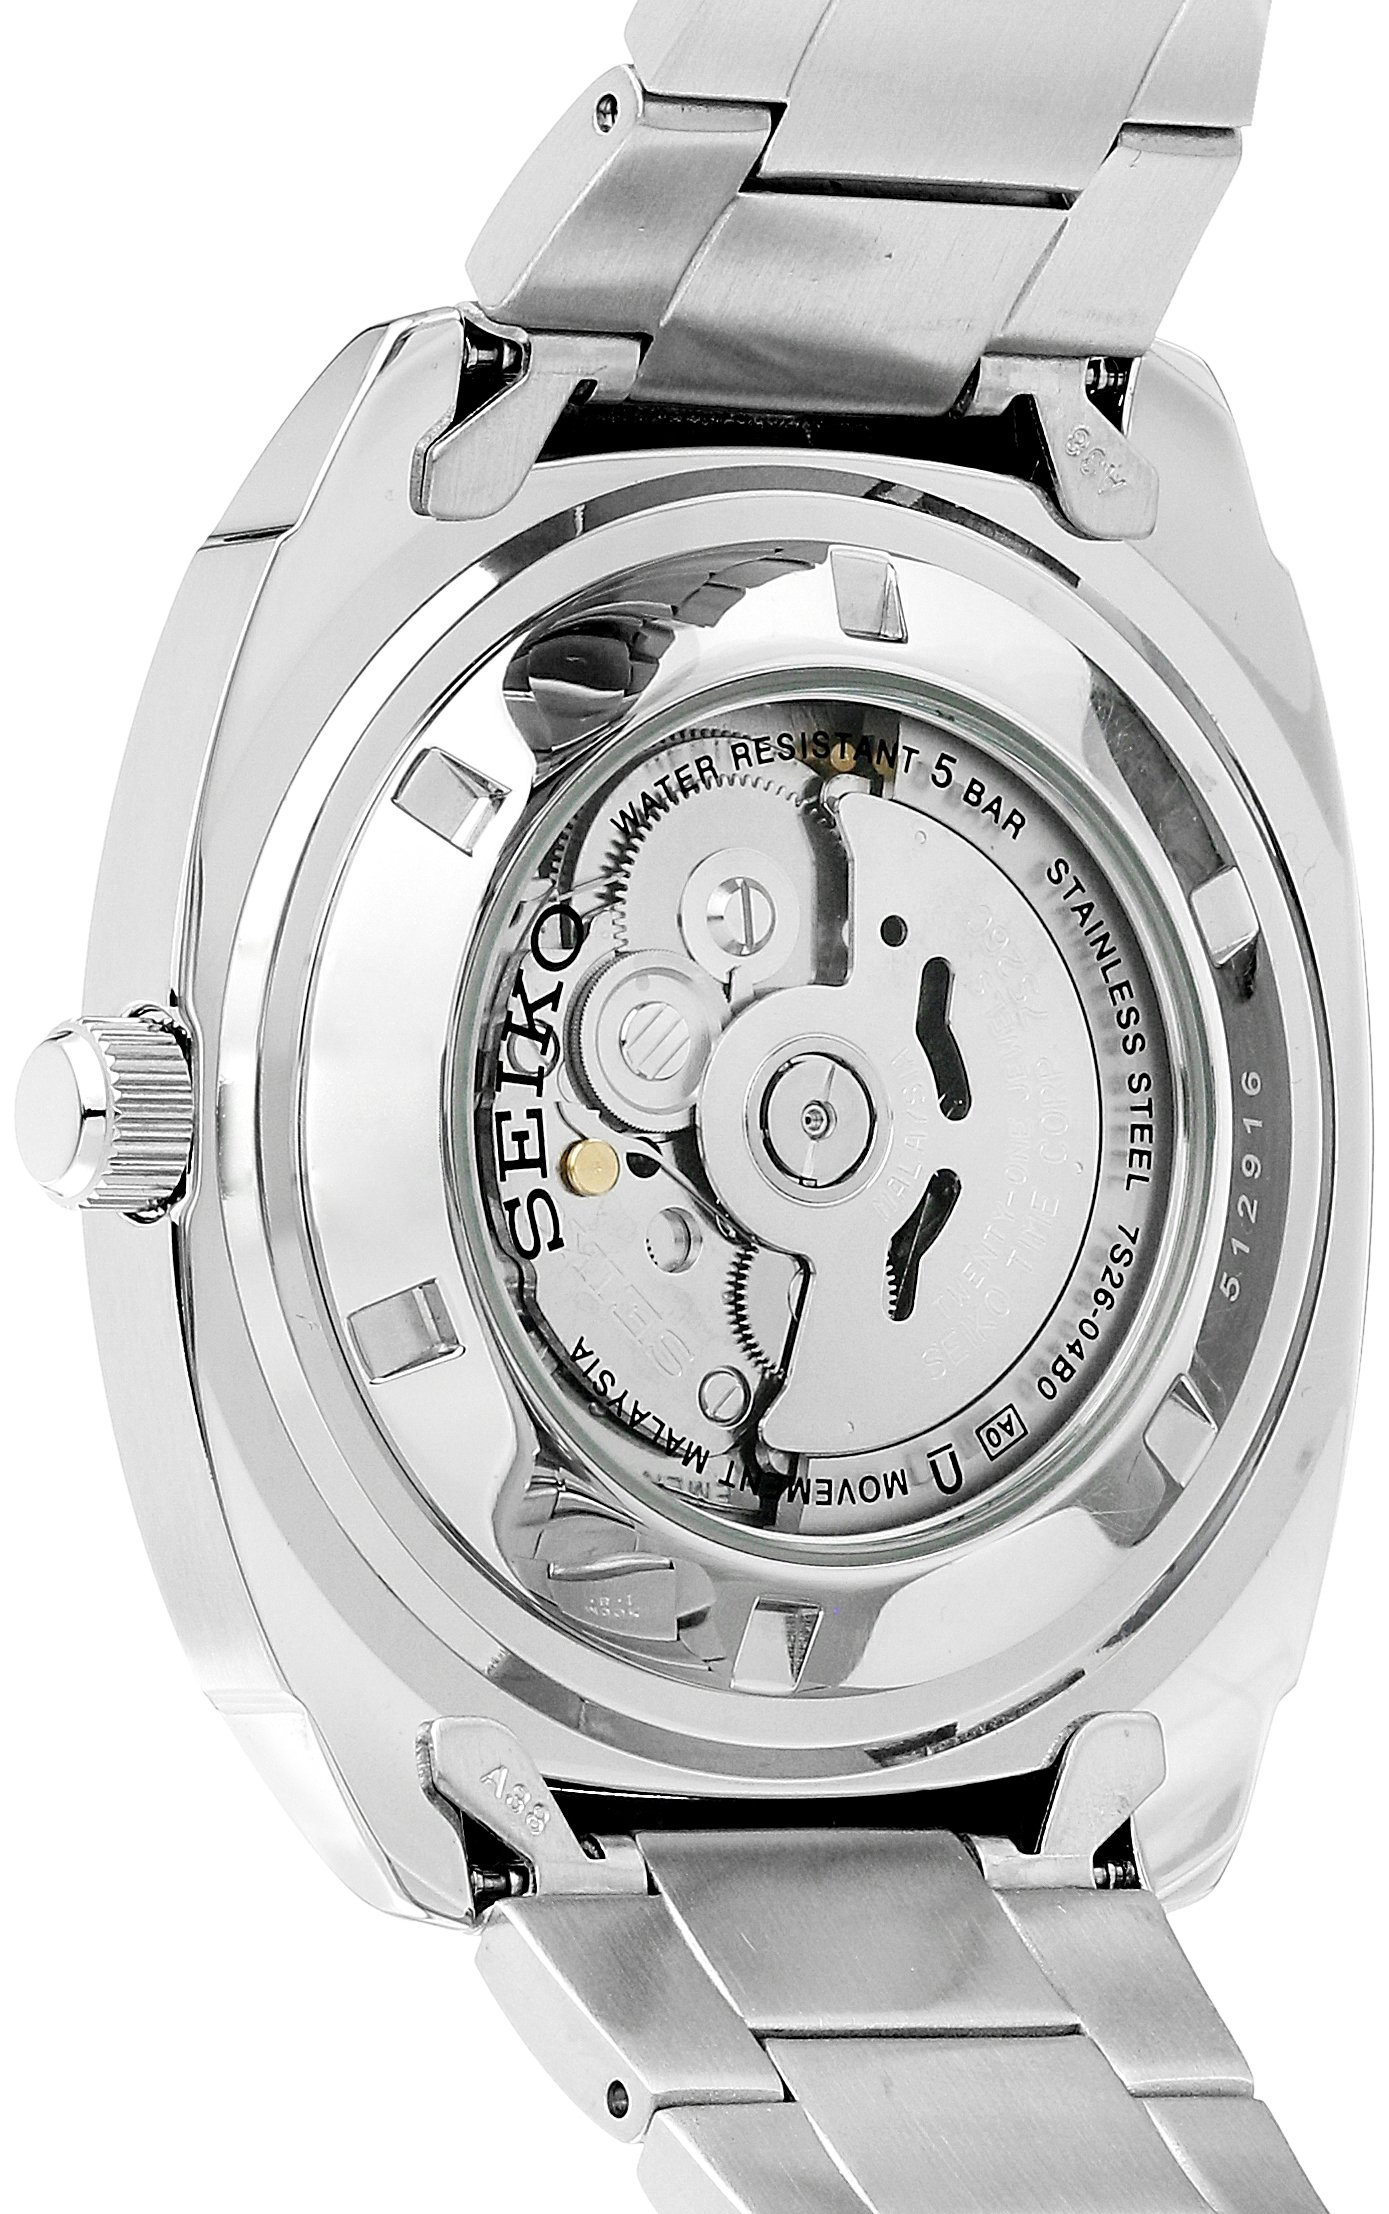 Seiko Men's SNKM97 Analog Green Dial Automatic Silver Stainless Steel Watch by SEIKO (Image #2)